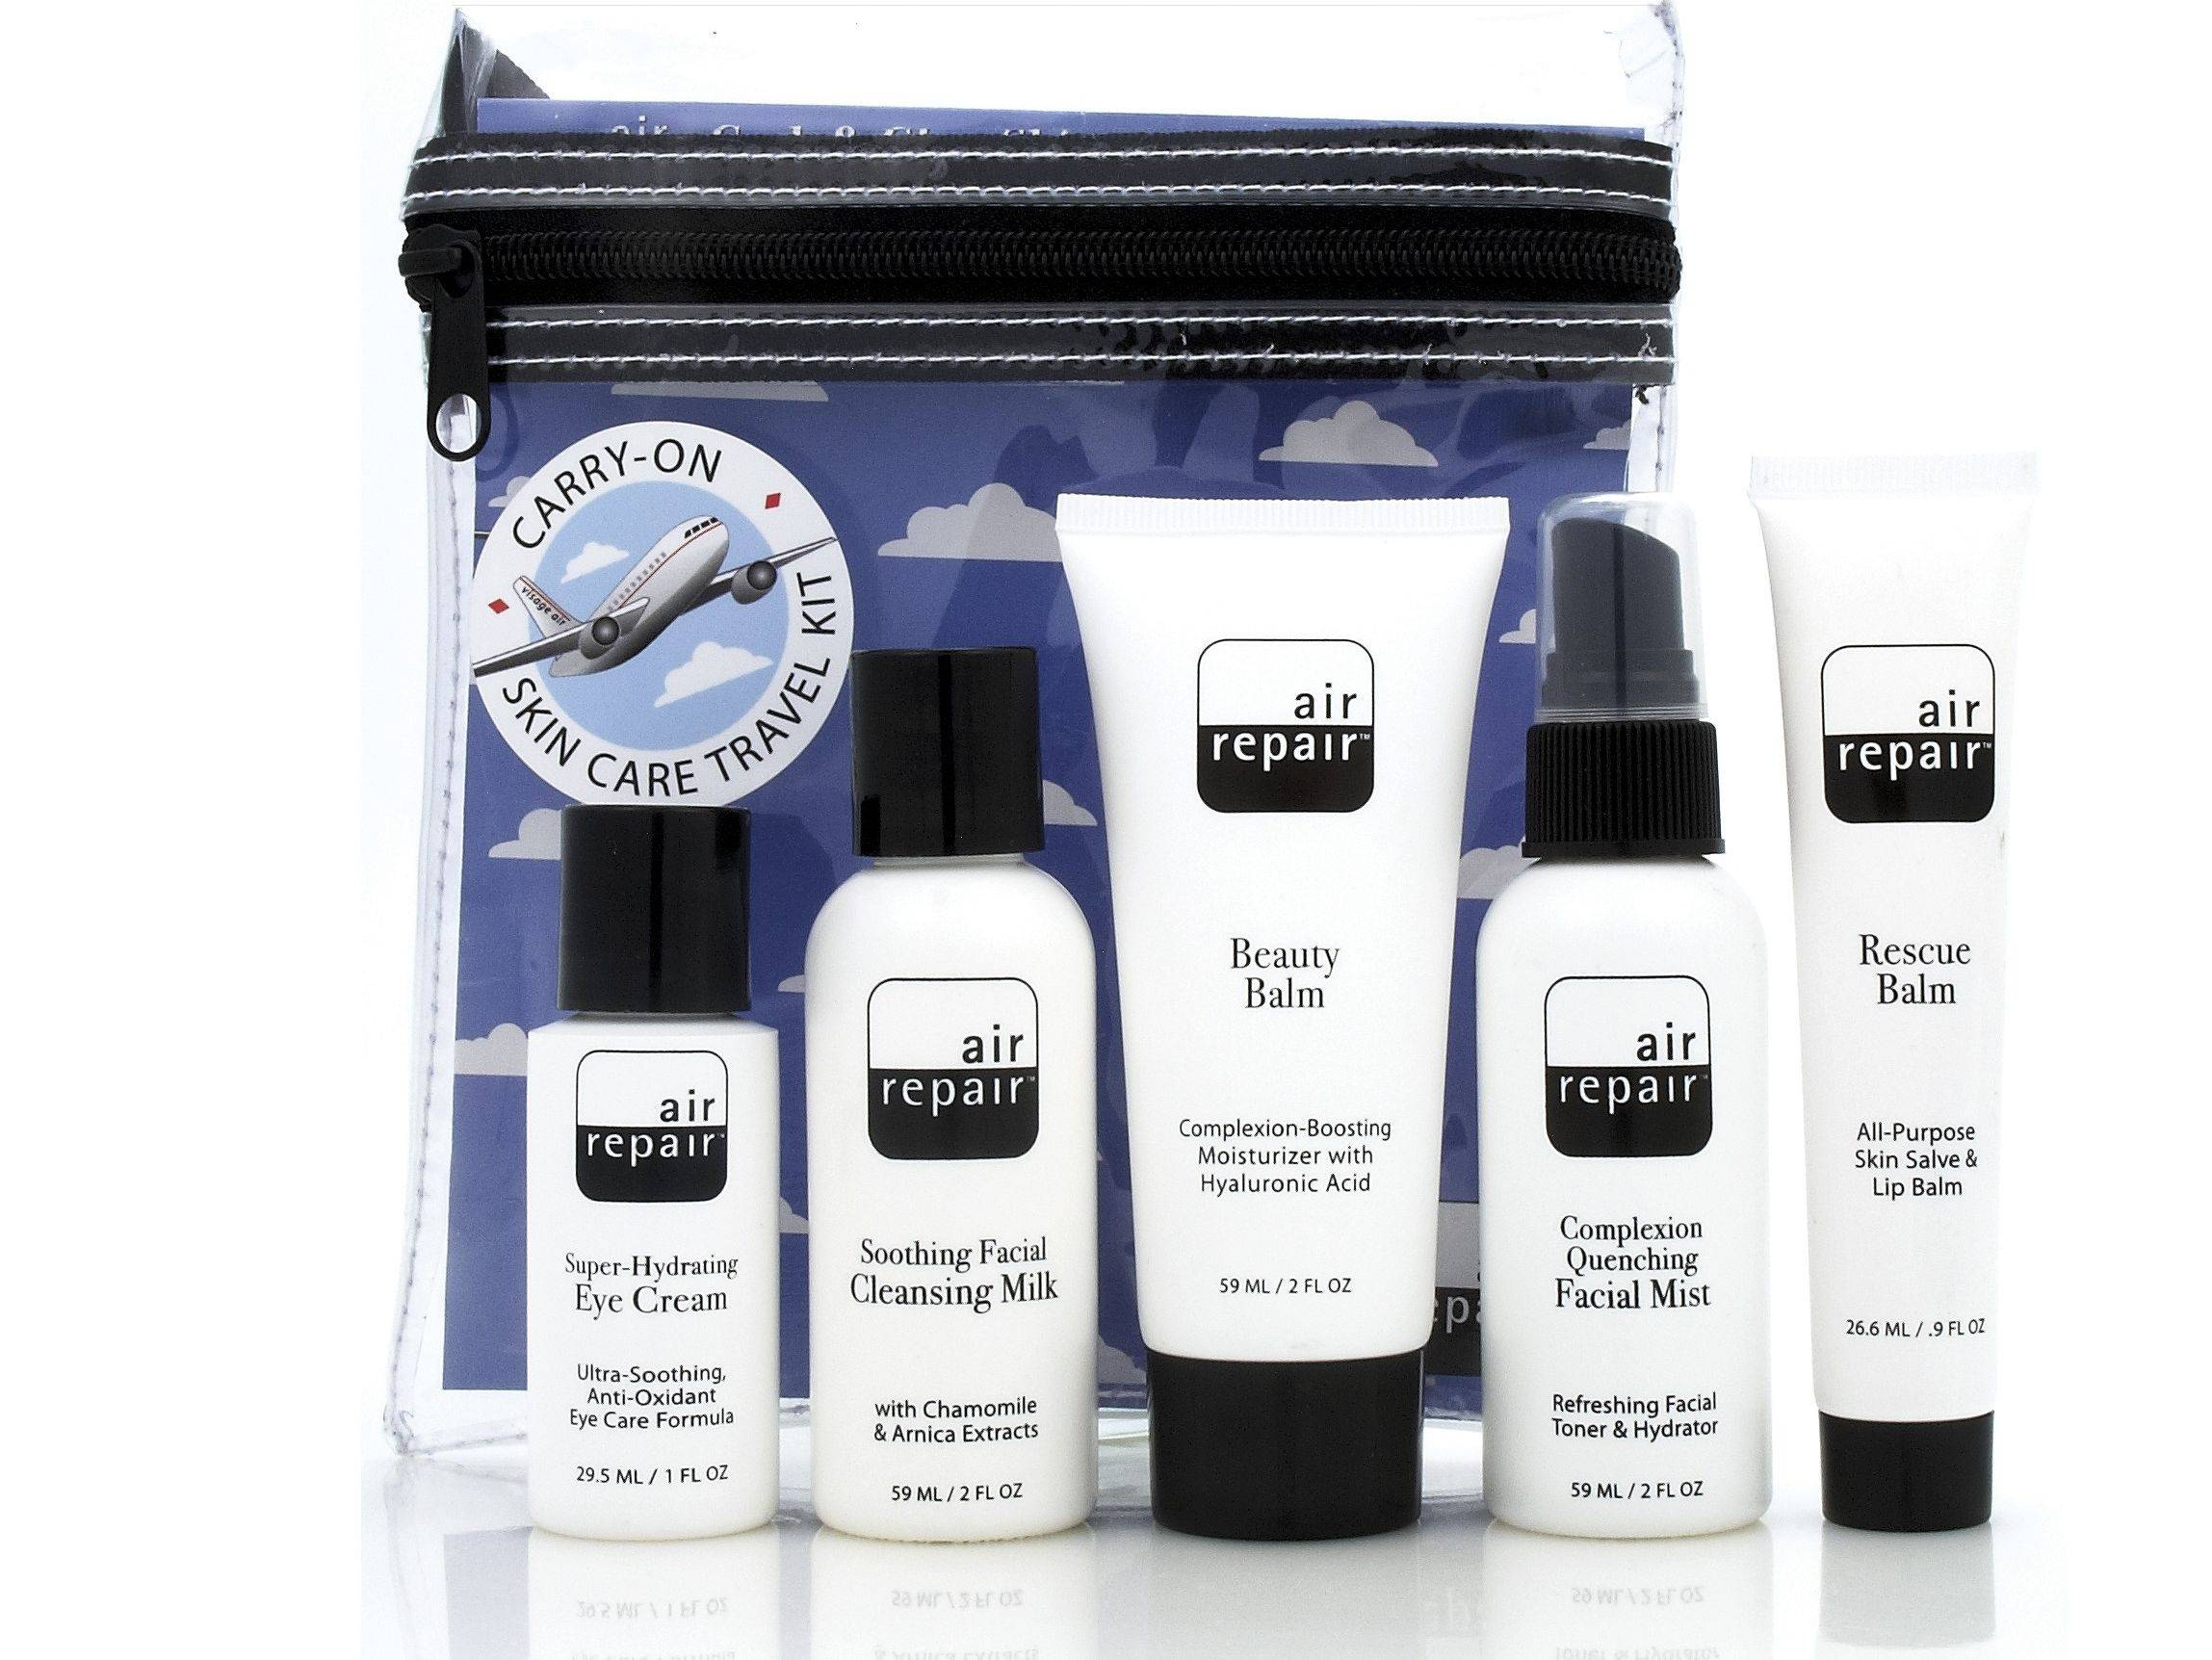 The Air Repair Kit includes skin care products designed for travelers in sizes that are permitted in carry-on luggage.